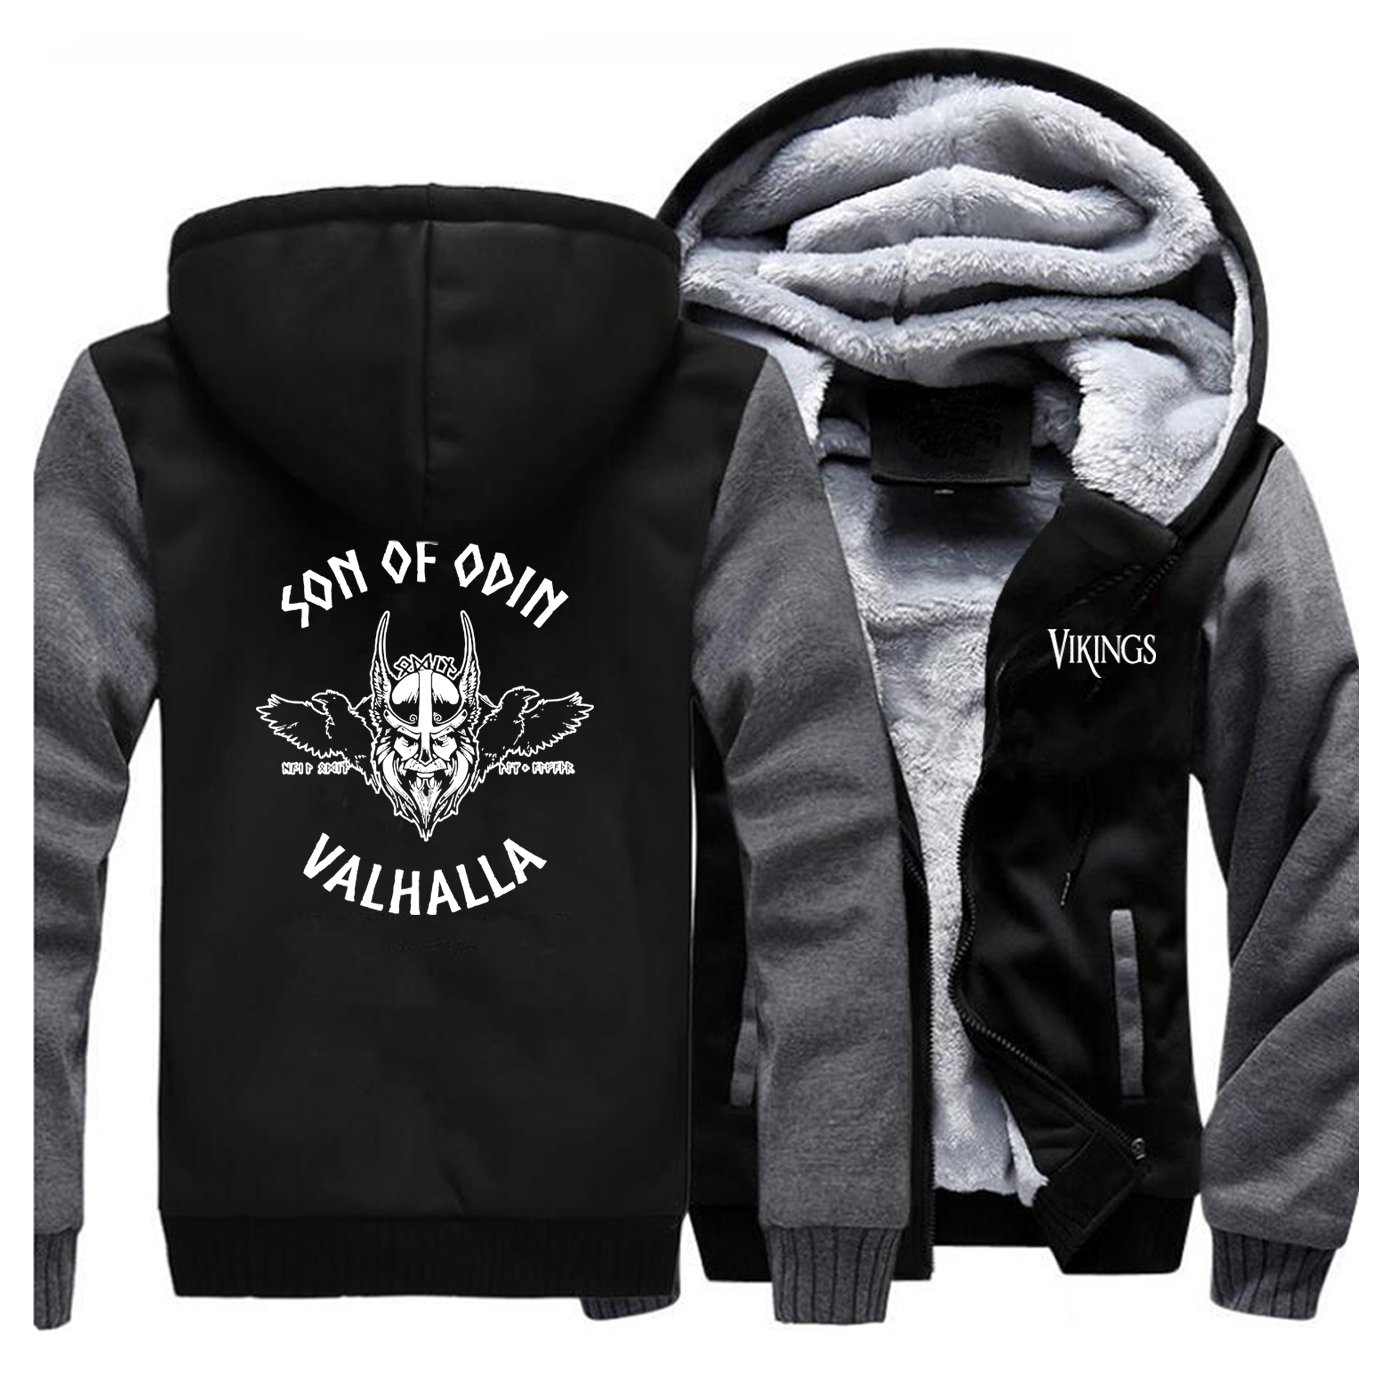 Son Of Odin Valhalla Mens Hoodie 2019 Autumn Winter Thick Streetwear Clothing Newest Brand Fashion Male Outwear Zipper Warm Coat